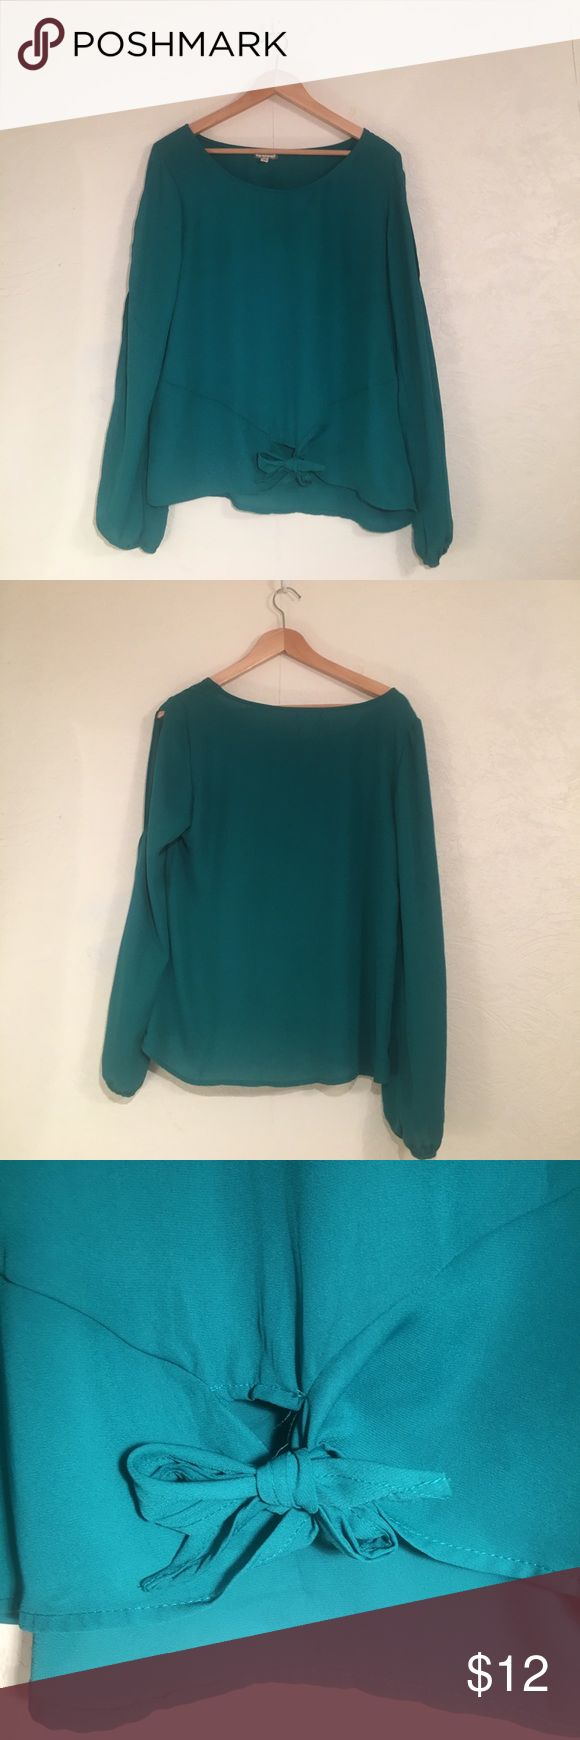 Beautiful Teal Blouse Vibrant teal blouse. Only worn once and in great condition. Features a little knot on the bottom front that can be untied and retied and a divided slit on the arms to show off a little skin. Great for casual or formal occasions! Eyeshadow Tops Blouses